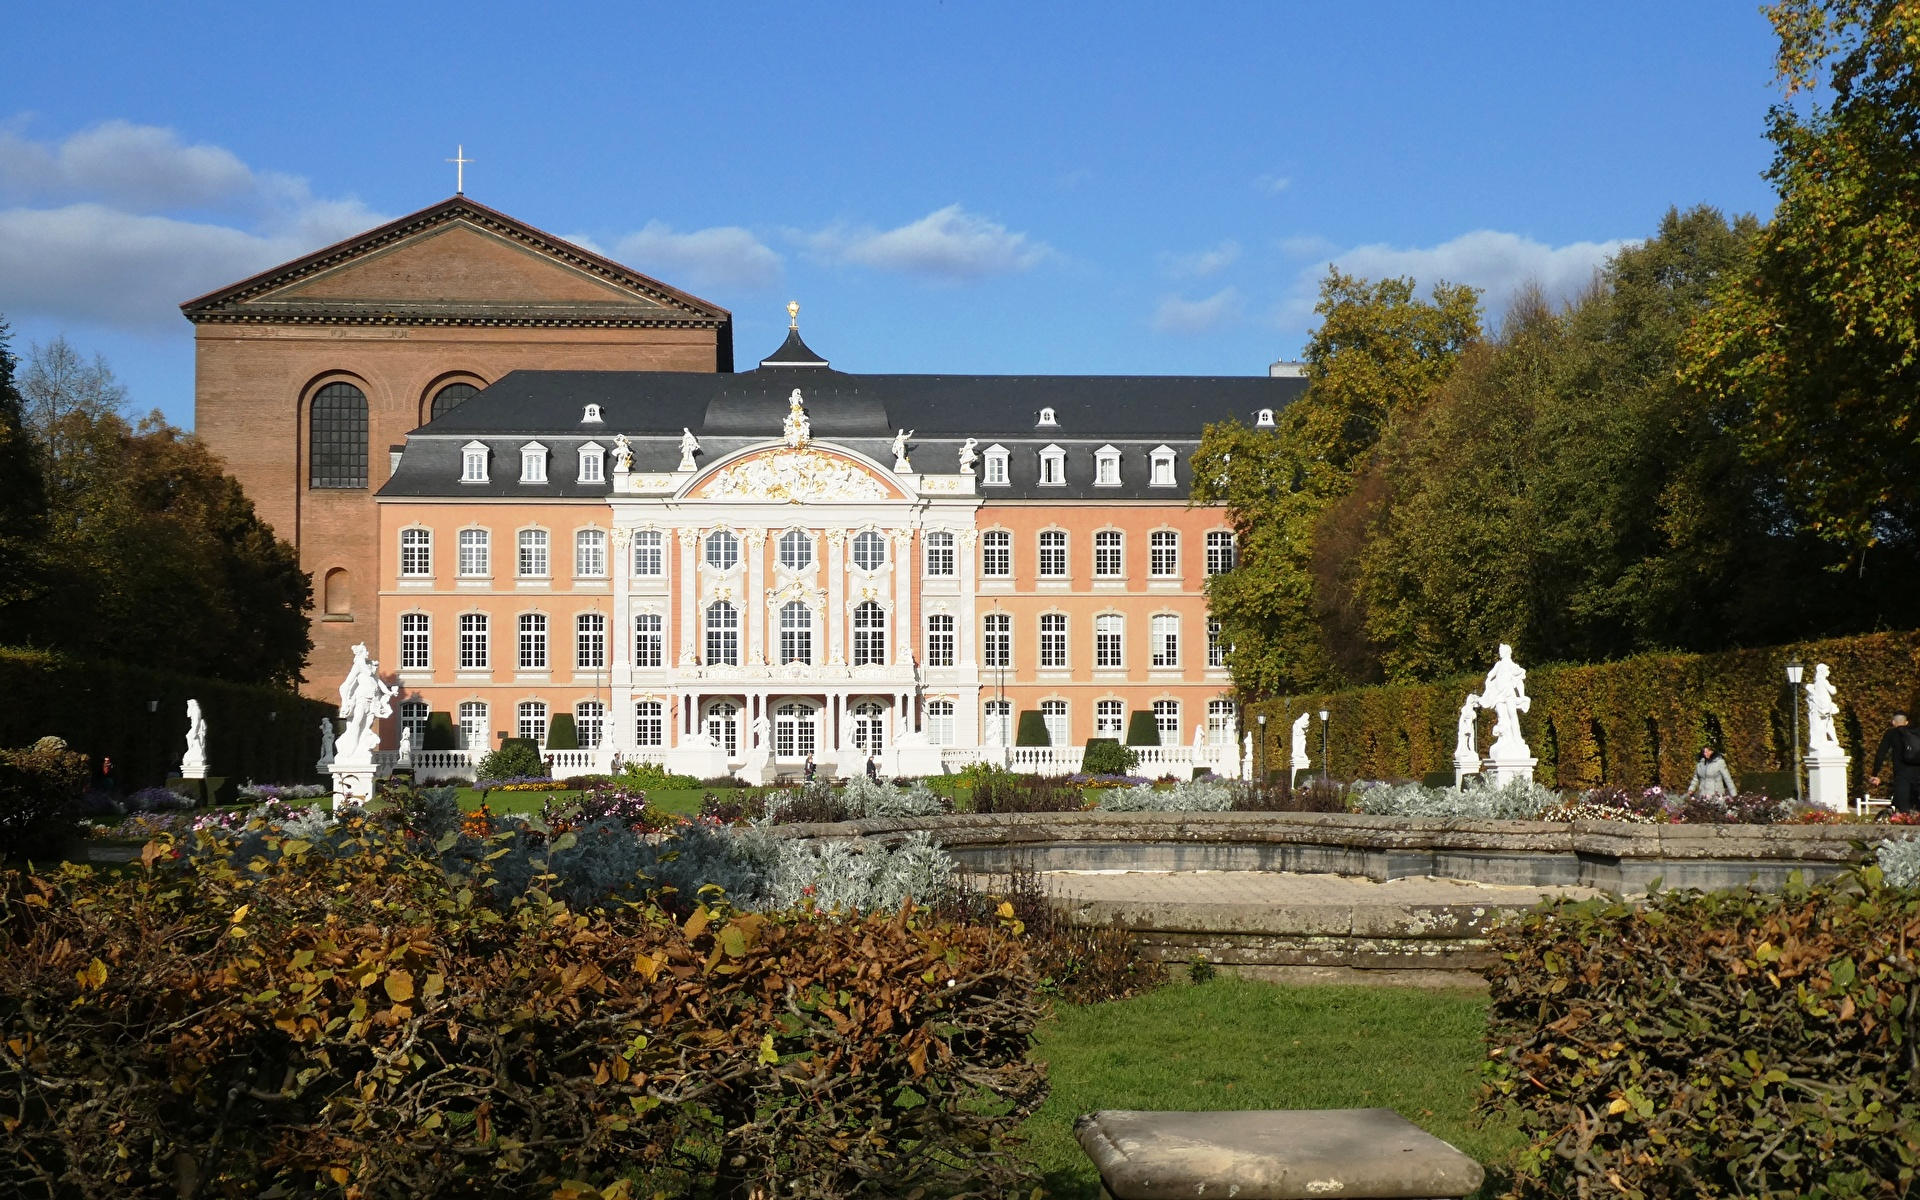 Pictures Palace Germany Monuments Electoral Palace, Trier, Rhineland-Palatinate Gardens Cities Sculptures 1920x1200